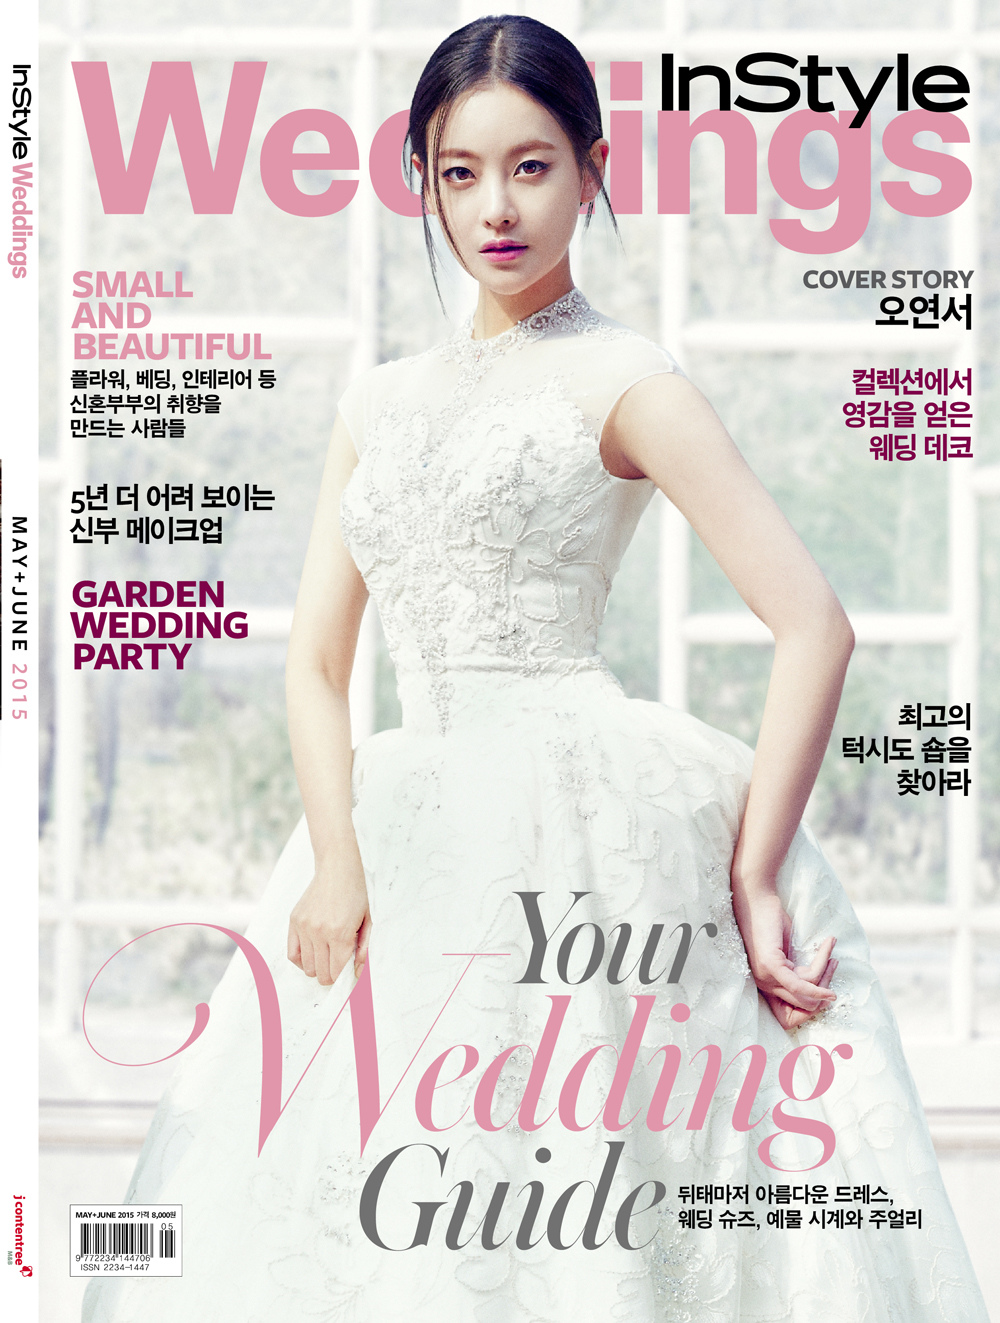 吳漣序_InStyle Weddings_201505_2